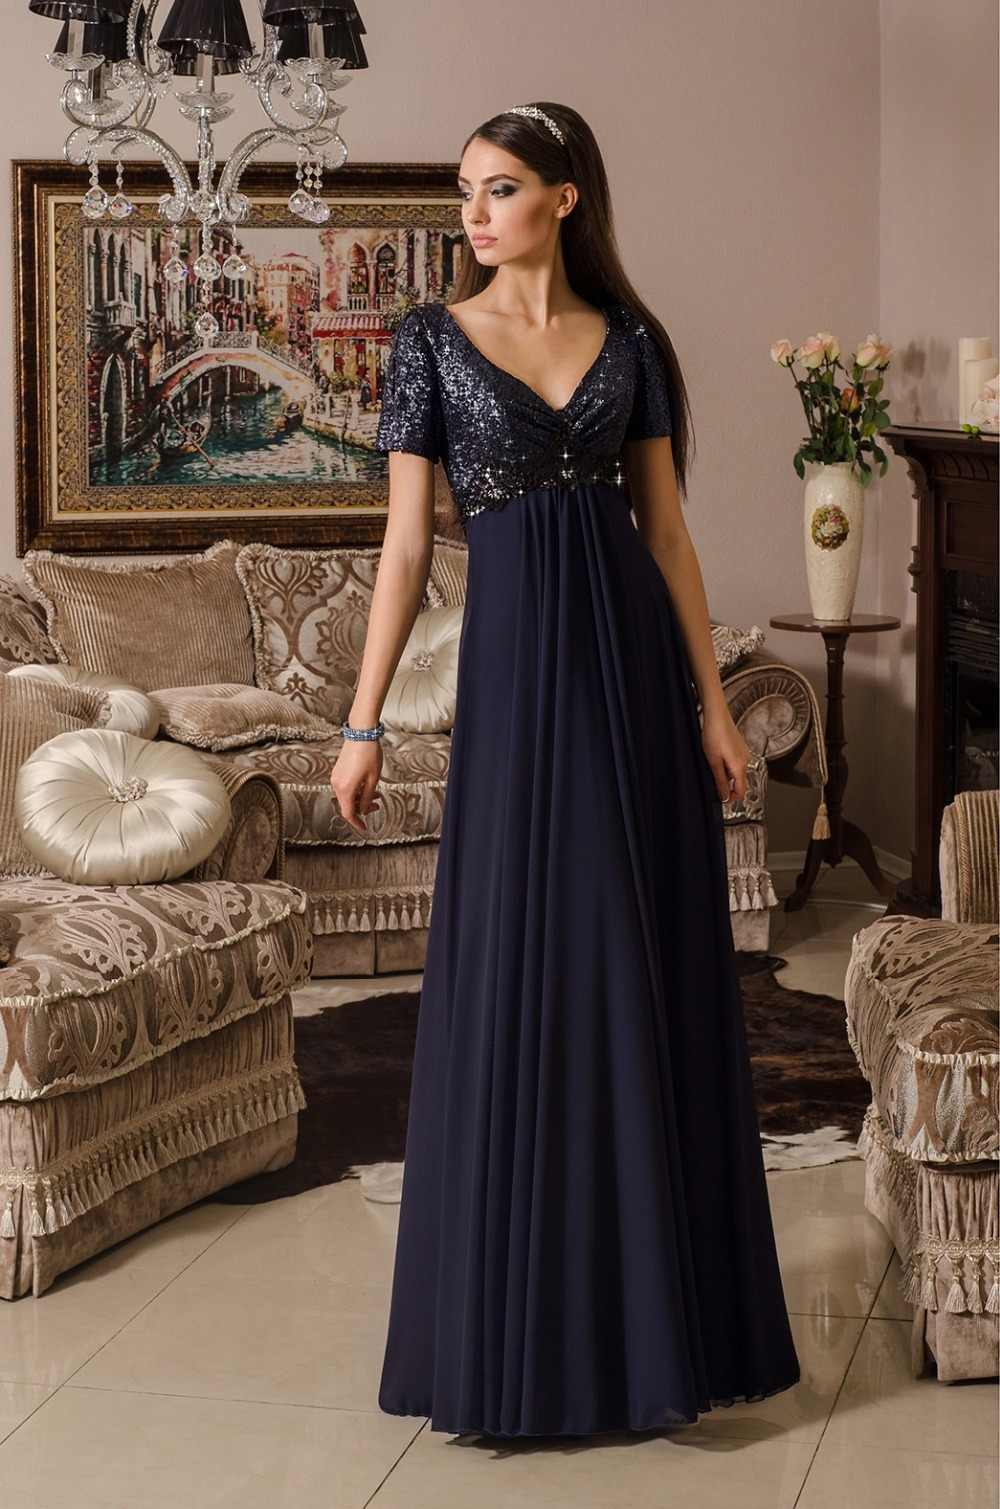 c59aba39025c0 AKD-05 Plus Size Formal Party Evening Gown 2015 Navy Blue Sequins Bodice  Short Sleeve Chiffon Evening Dress for Fat Women